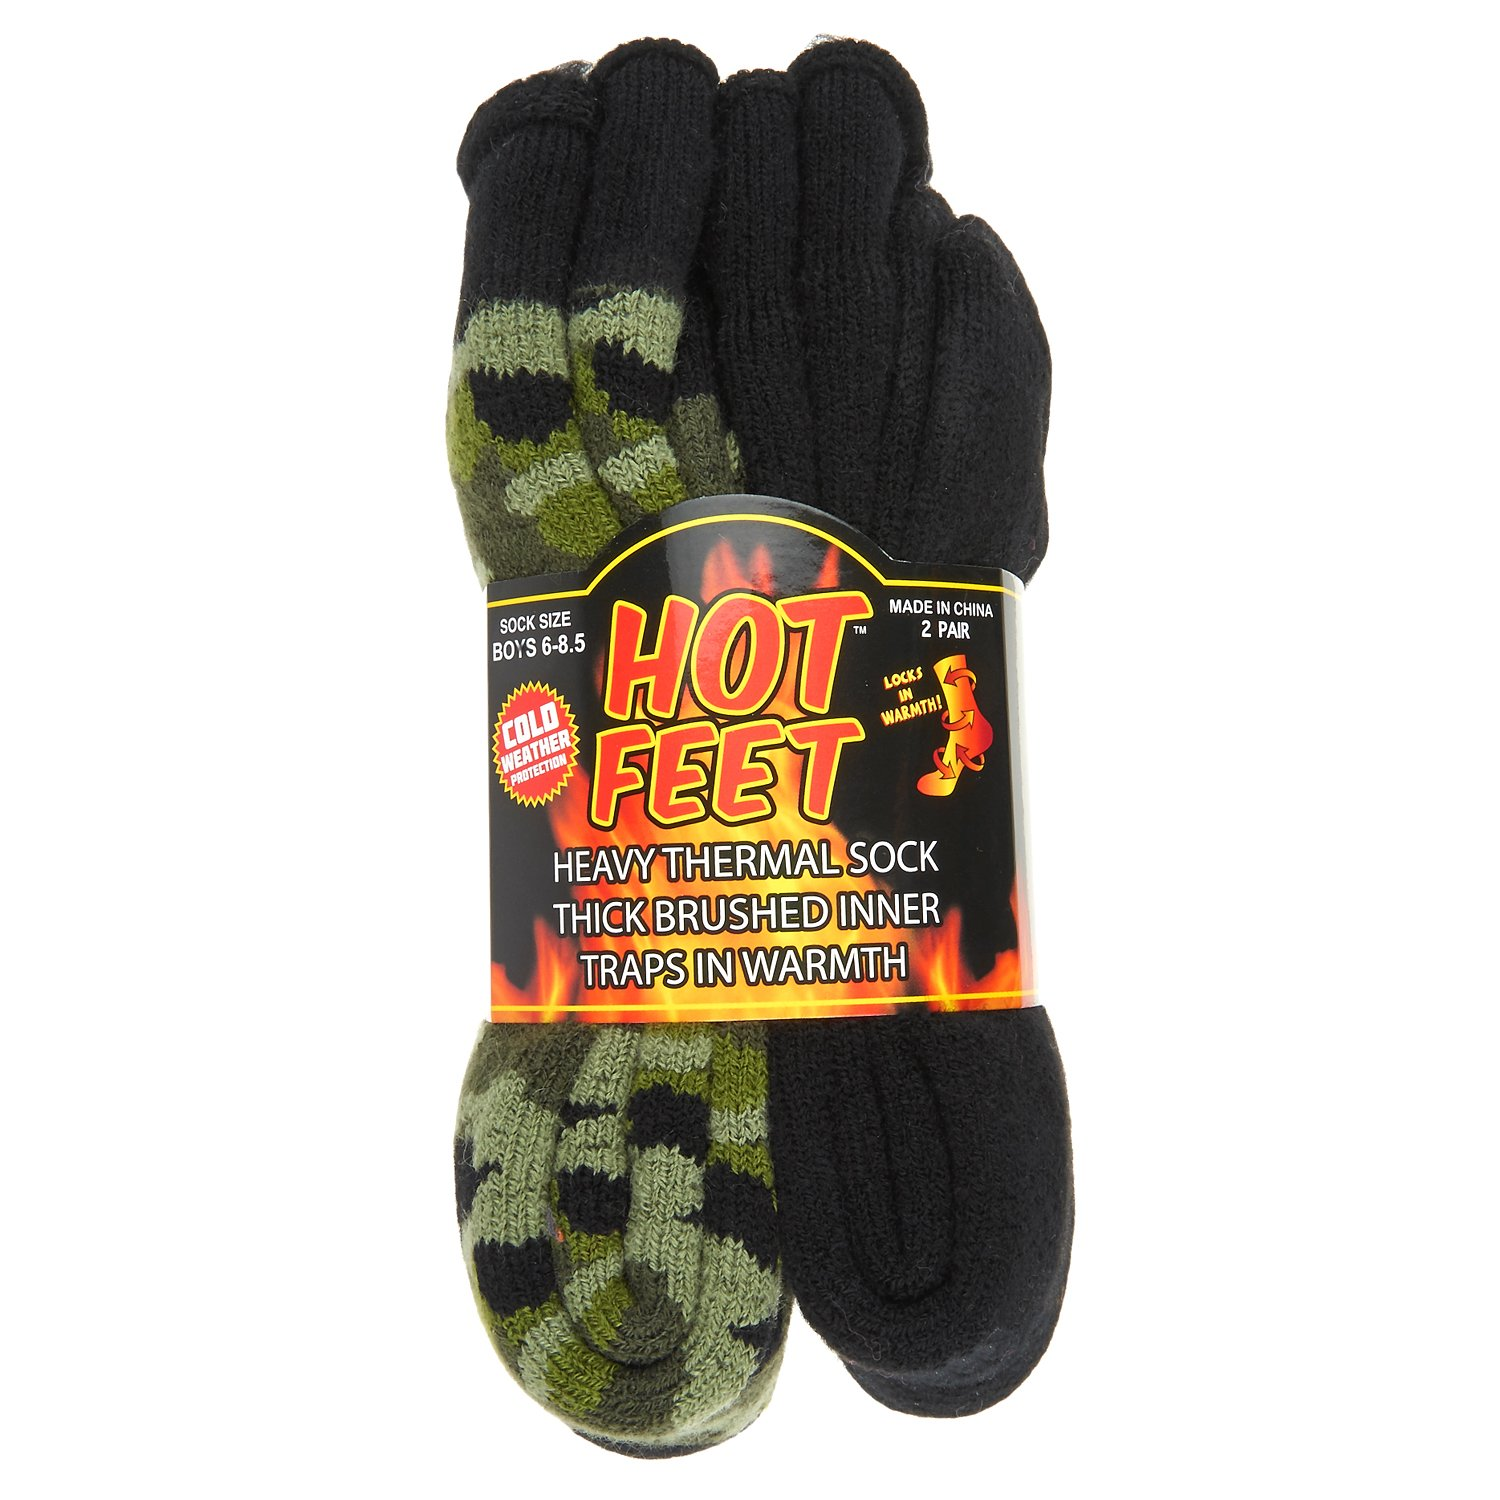 Hot Feet Boy's 2 Pairs Heavy Thermal Socks - Thick Insulated Crew for Cold Weather; Size: 6-13.5 (Age: 5-11),Green Camo and Solid Black